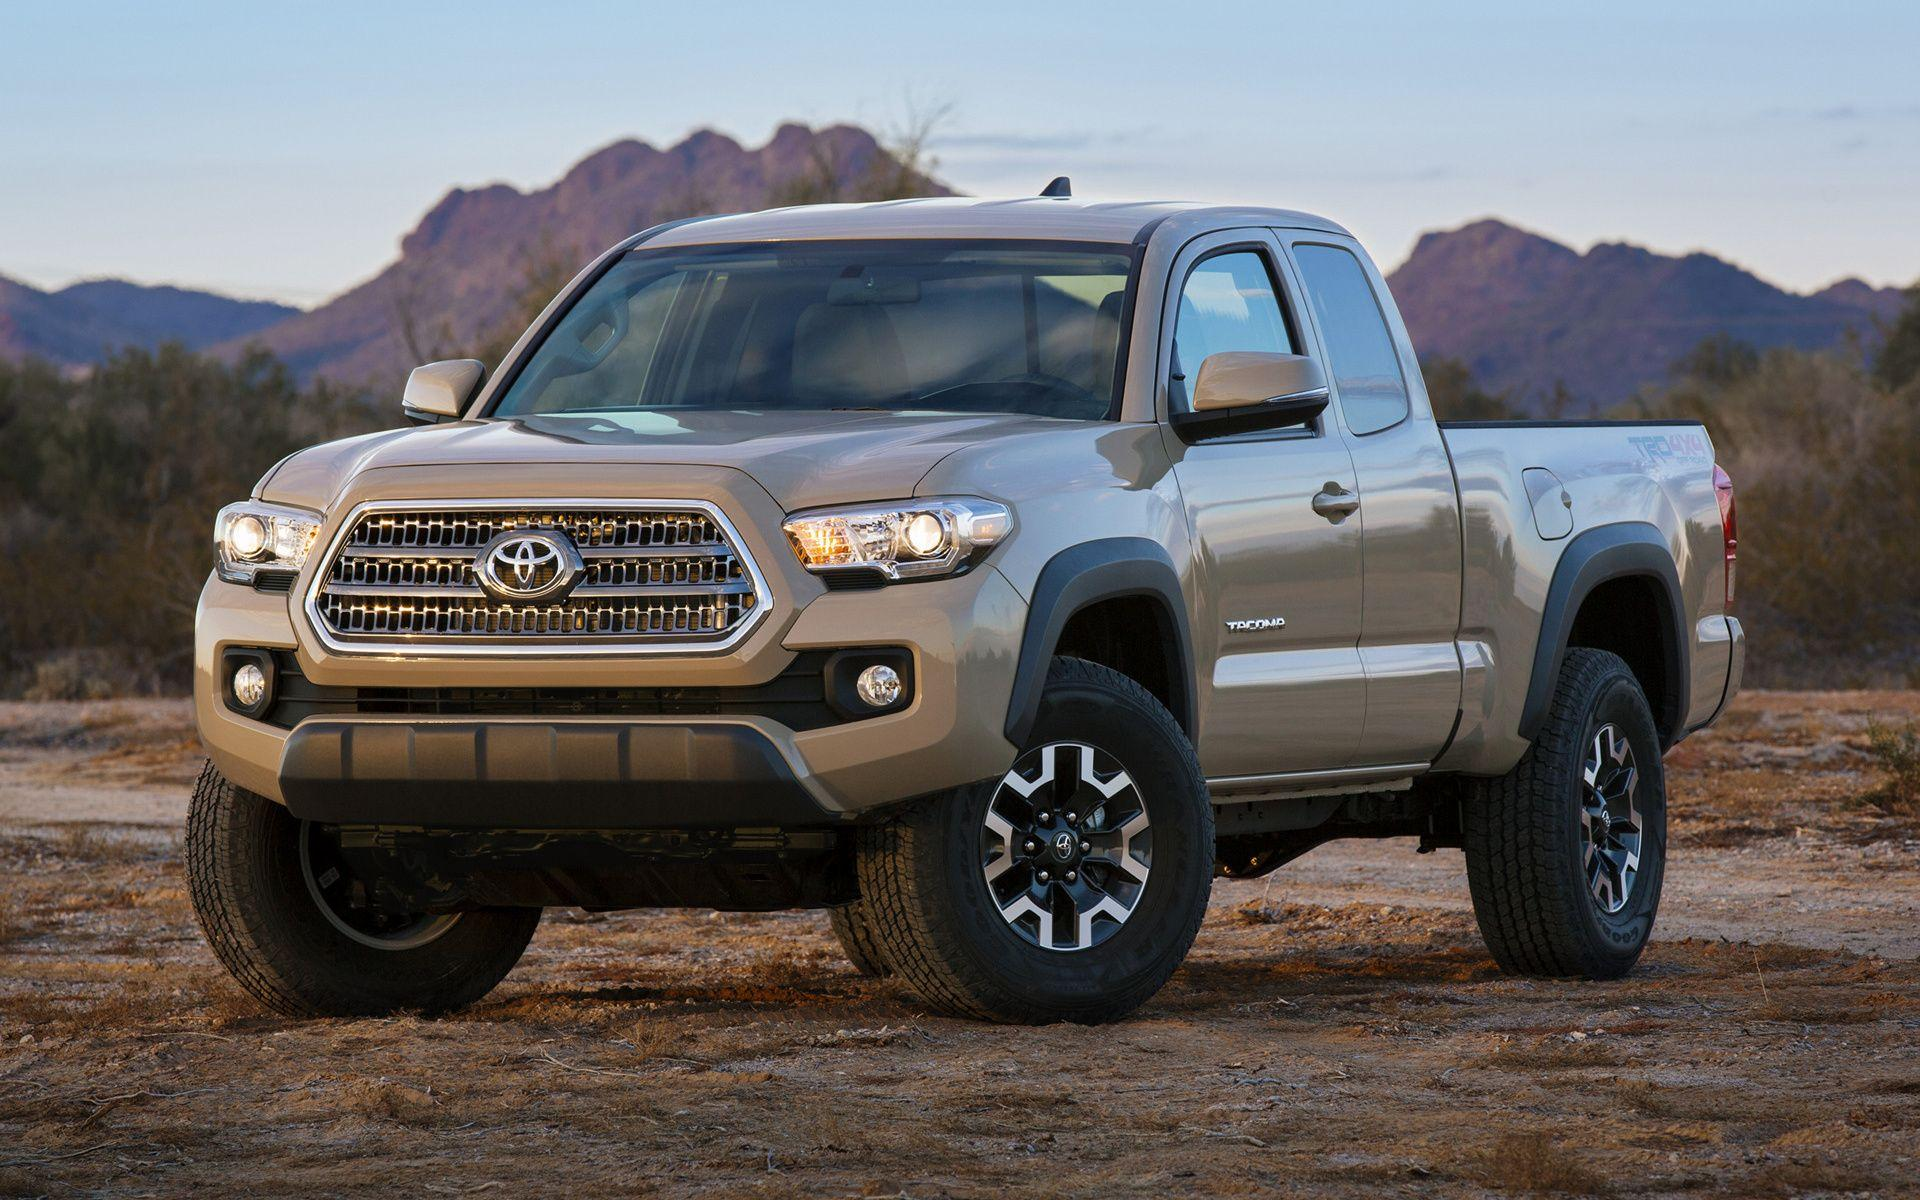 Toyota Tacoma TRD Off-Road Access Cab (2016) Wallpapers and HD ...